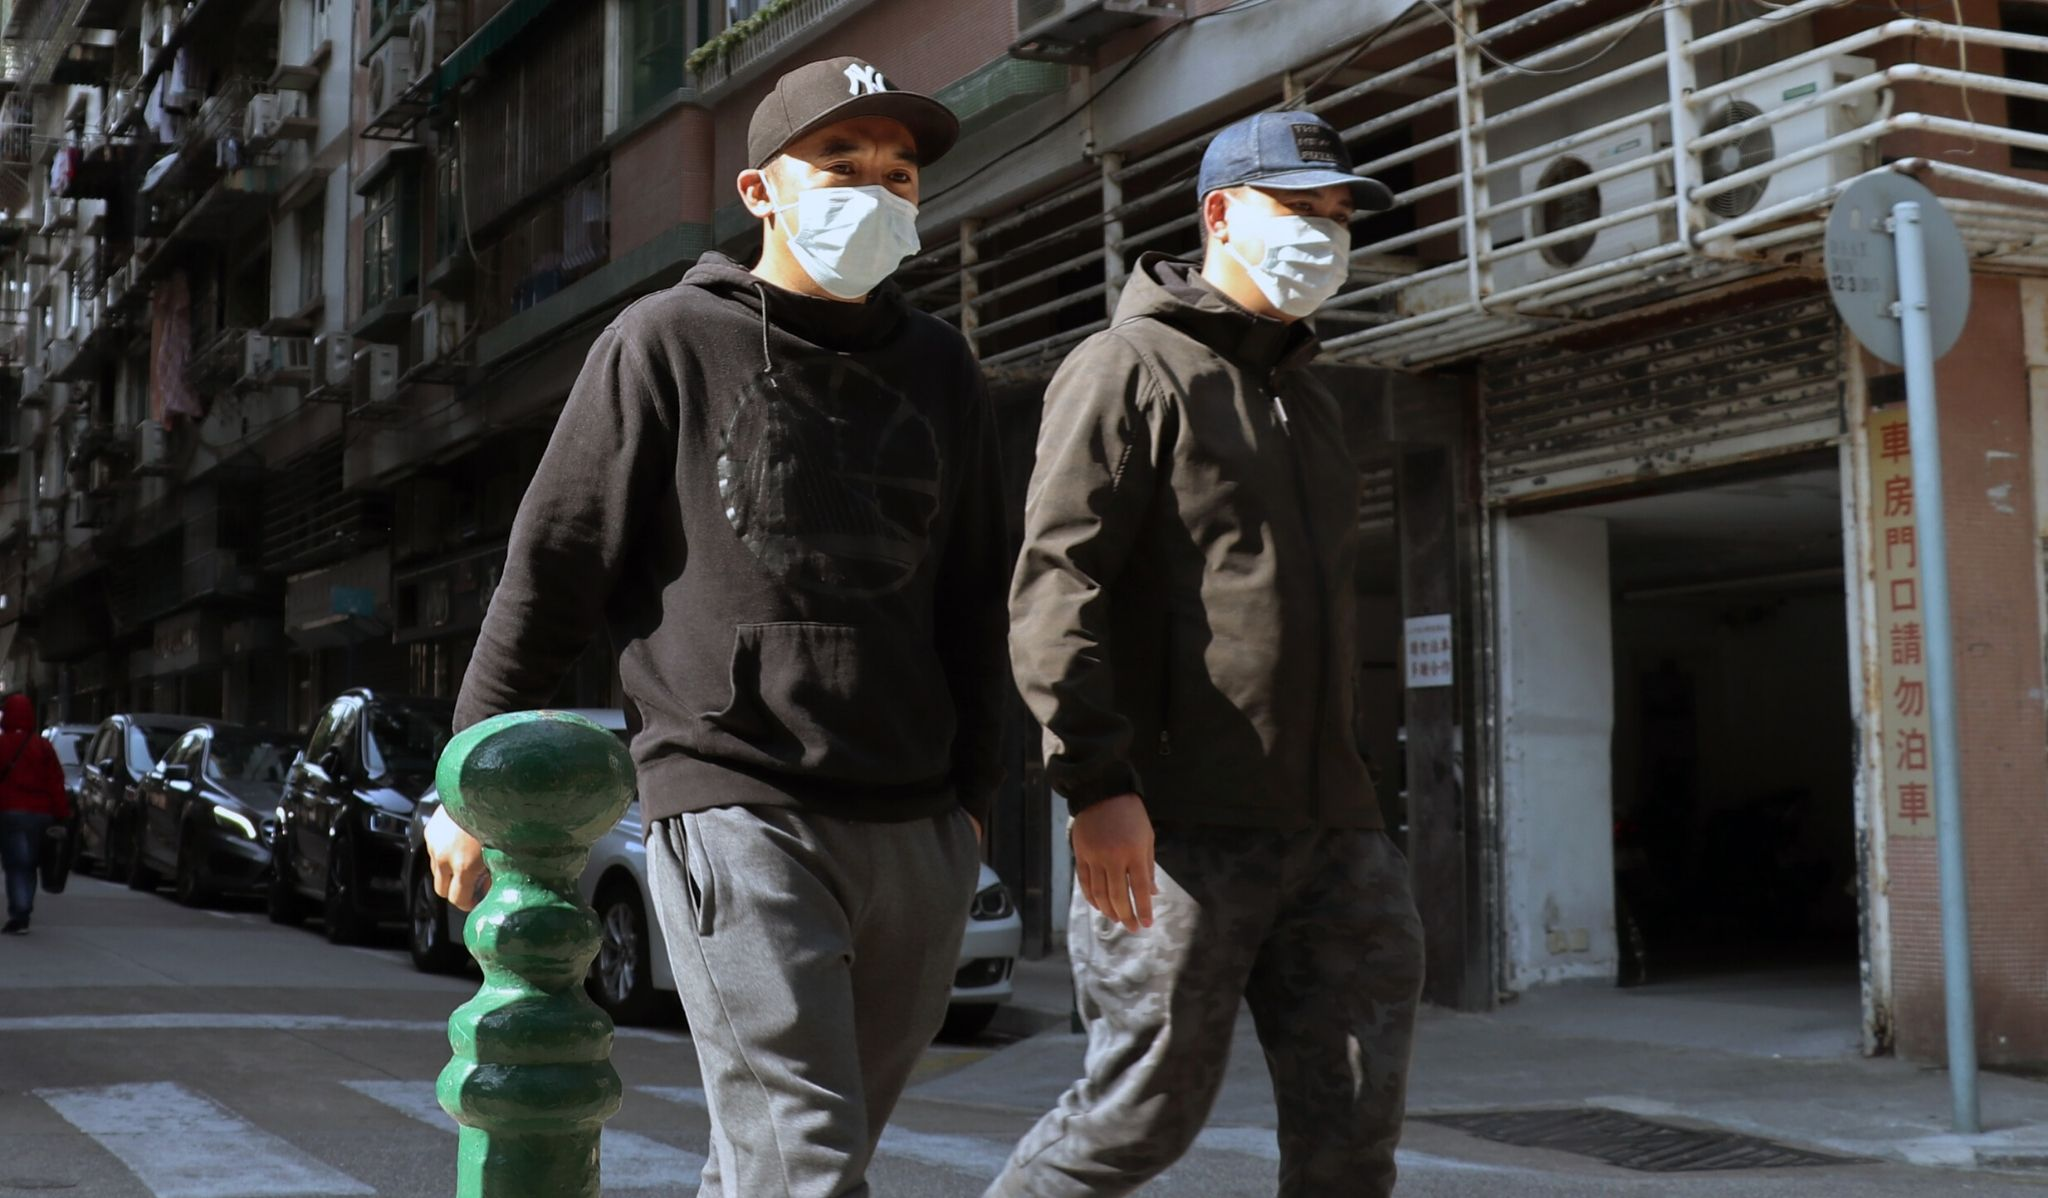 Two men walking with face masks on